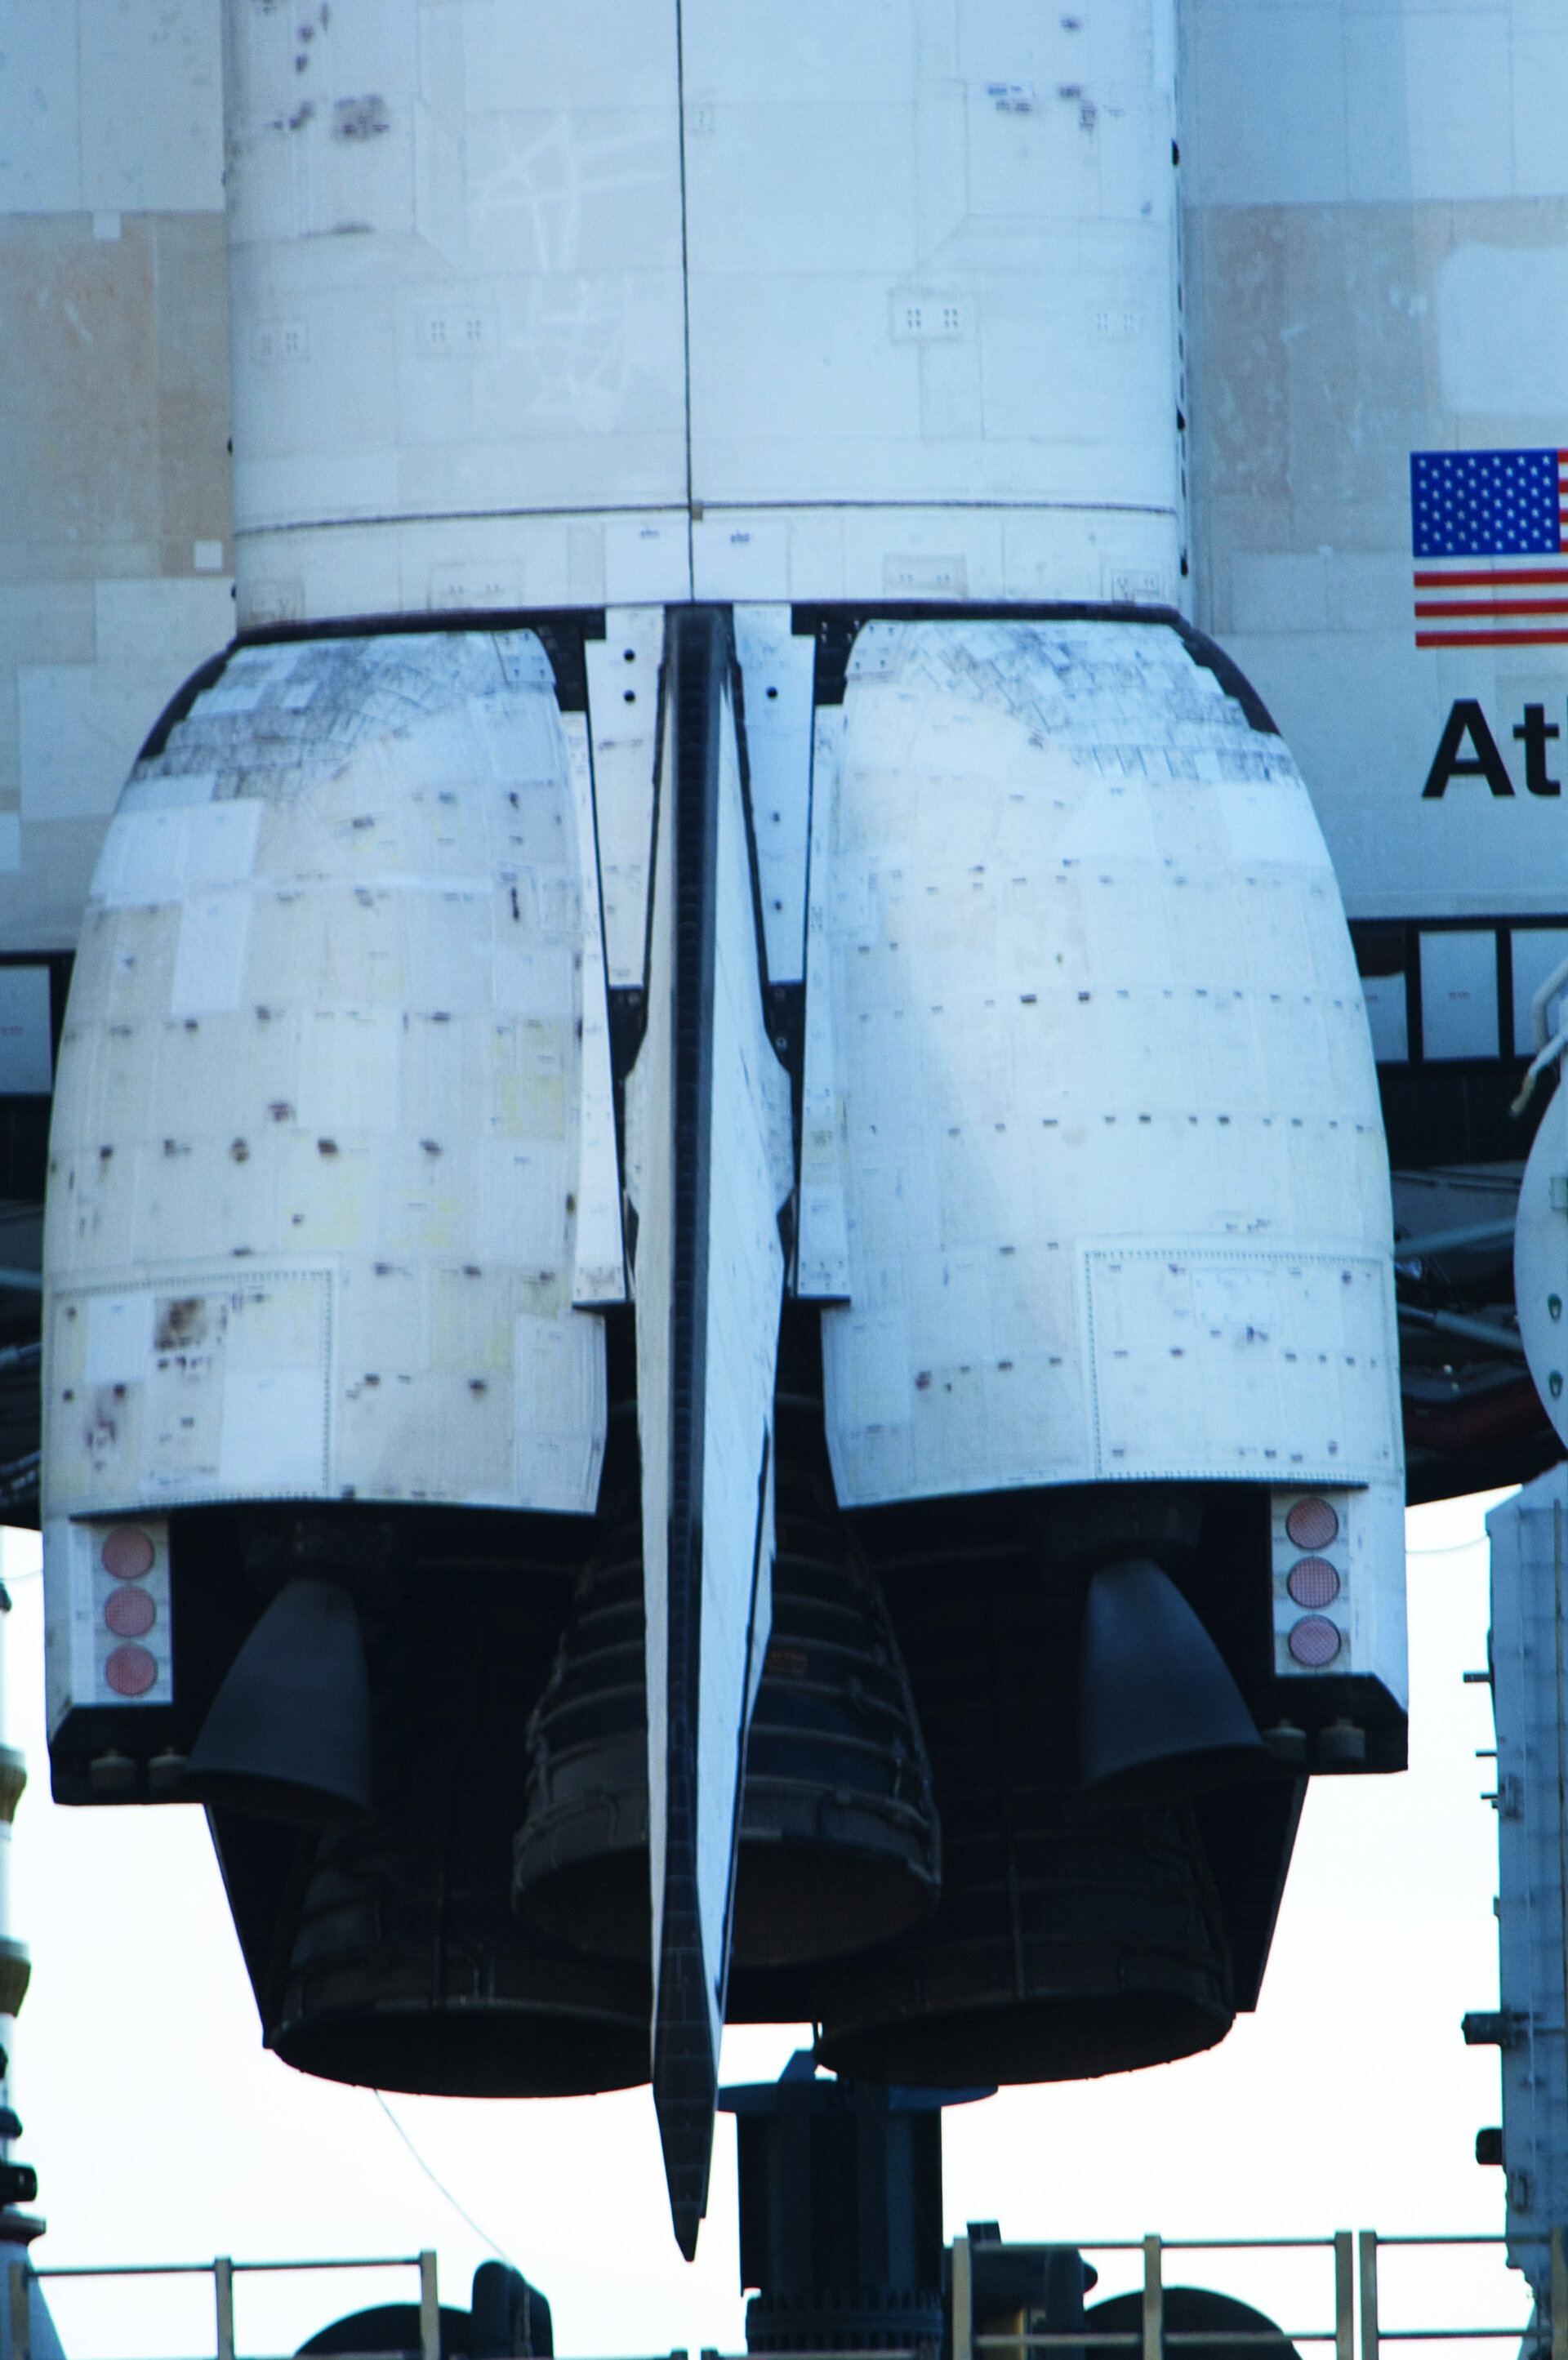 Close-up view of Space Shuttle Atlantis' main engines